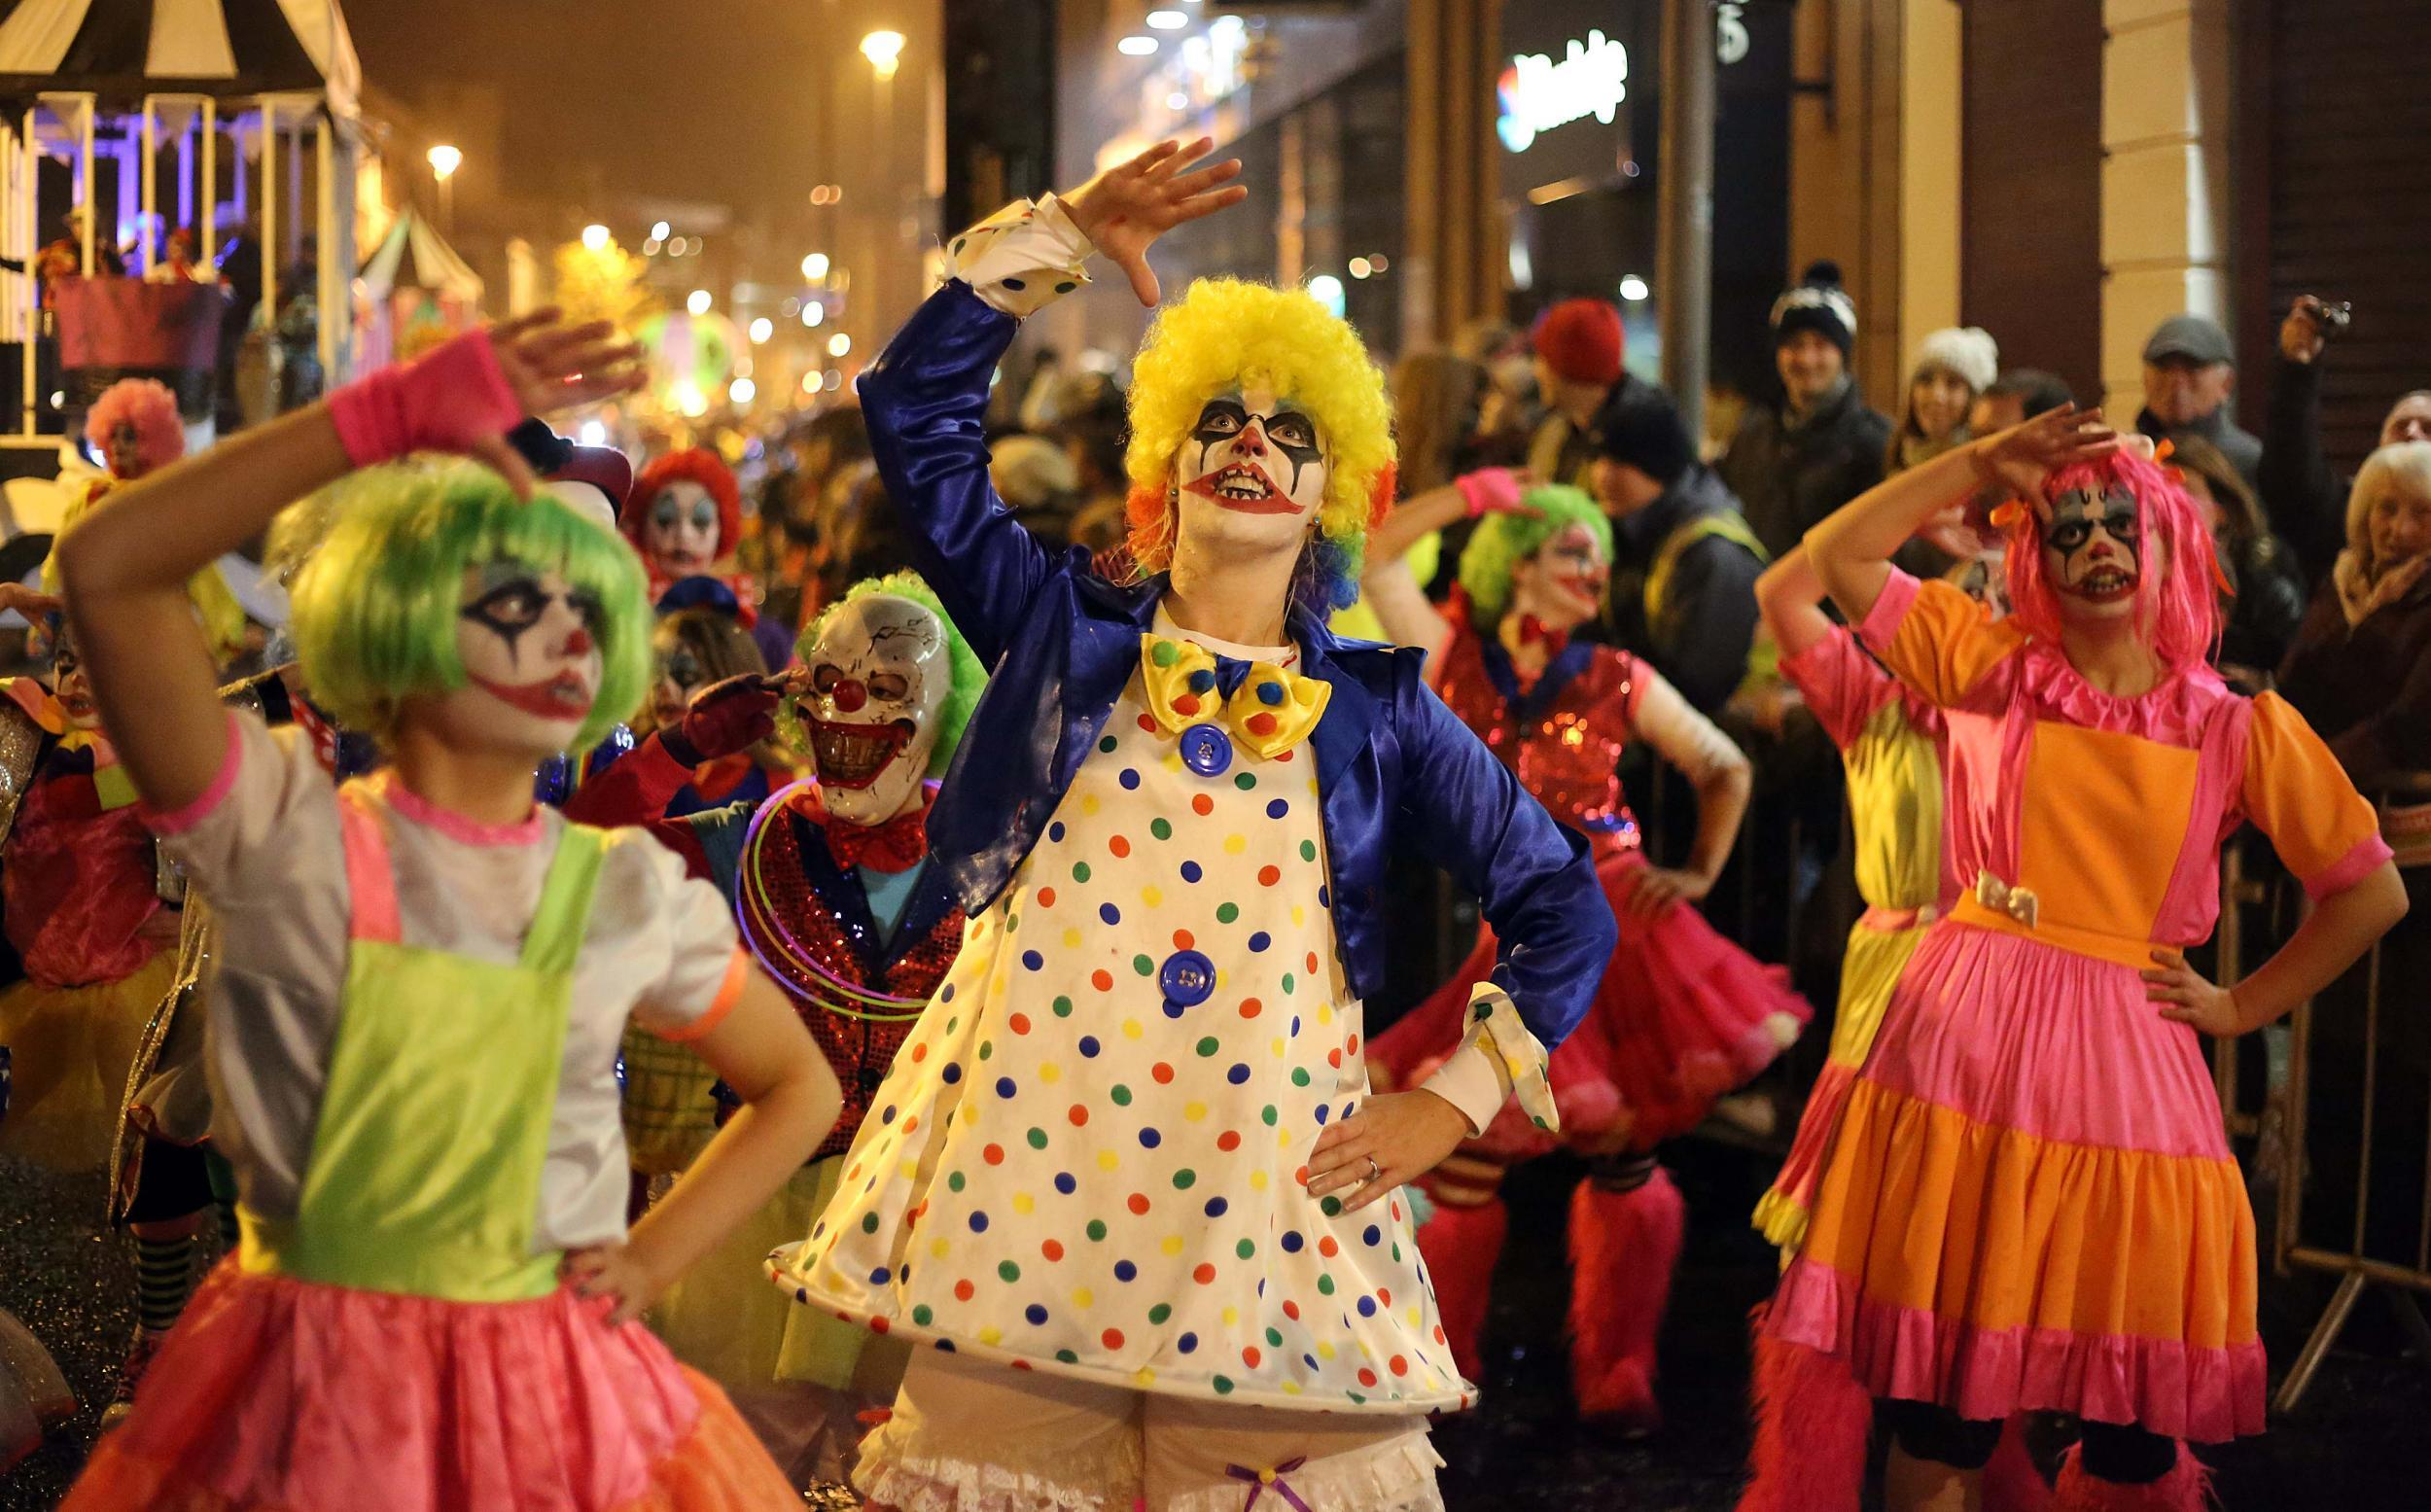 how derry became the best halloween destination in the world | the